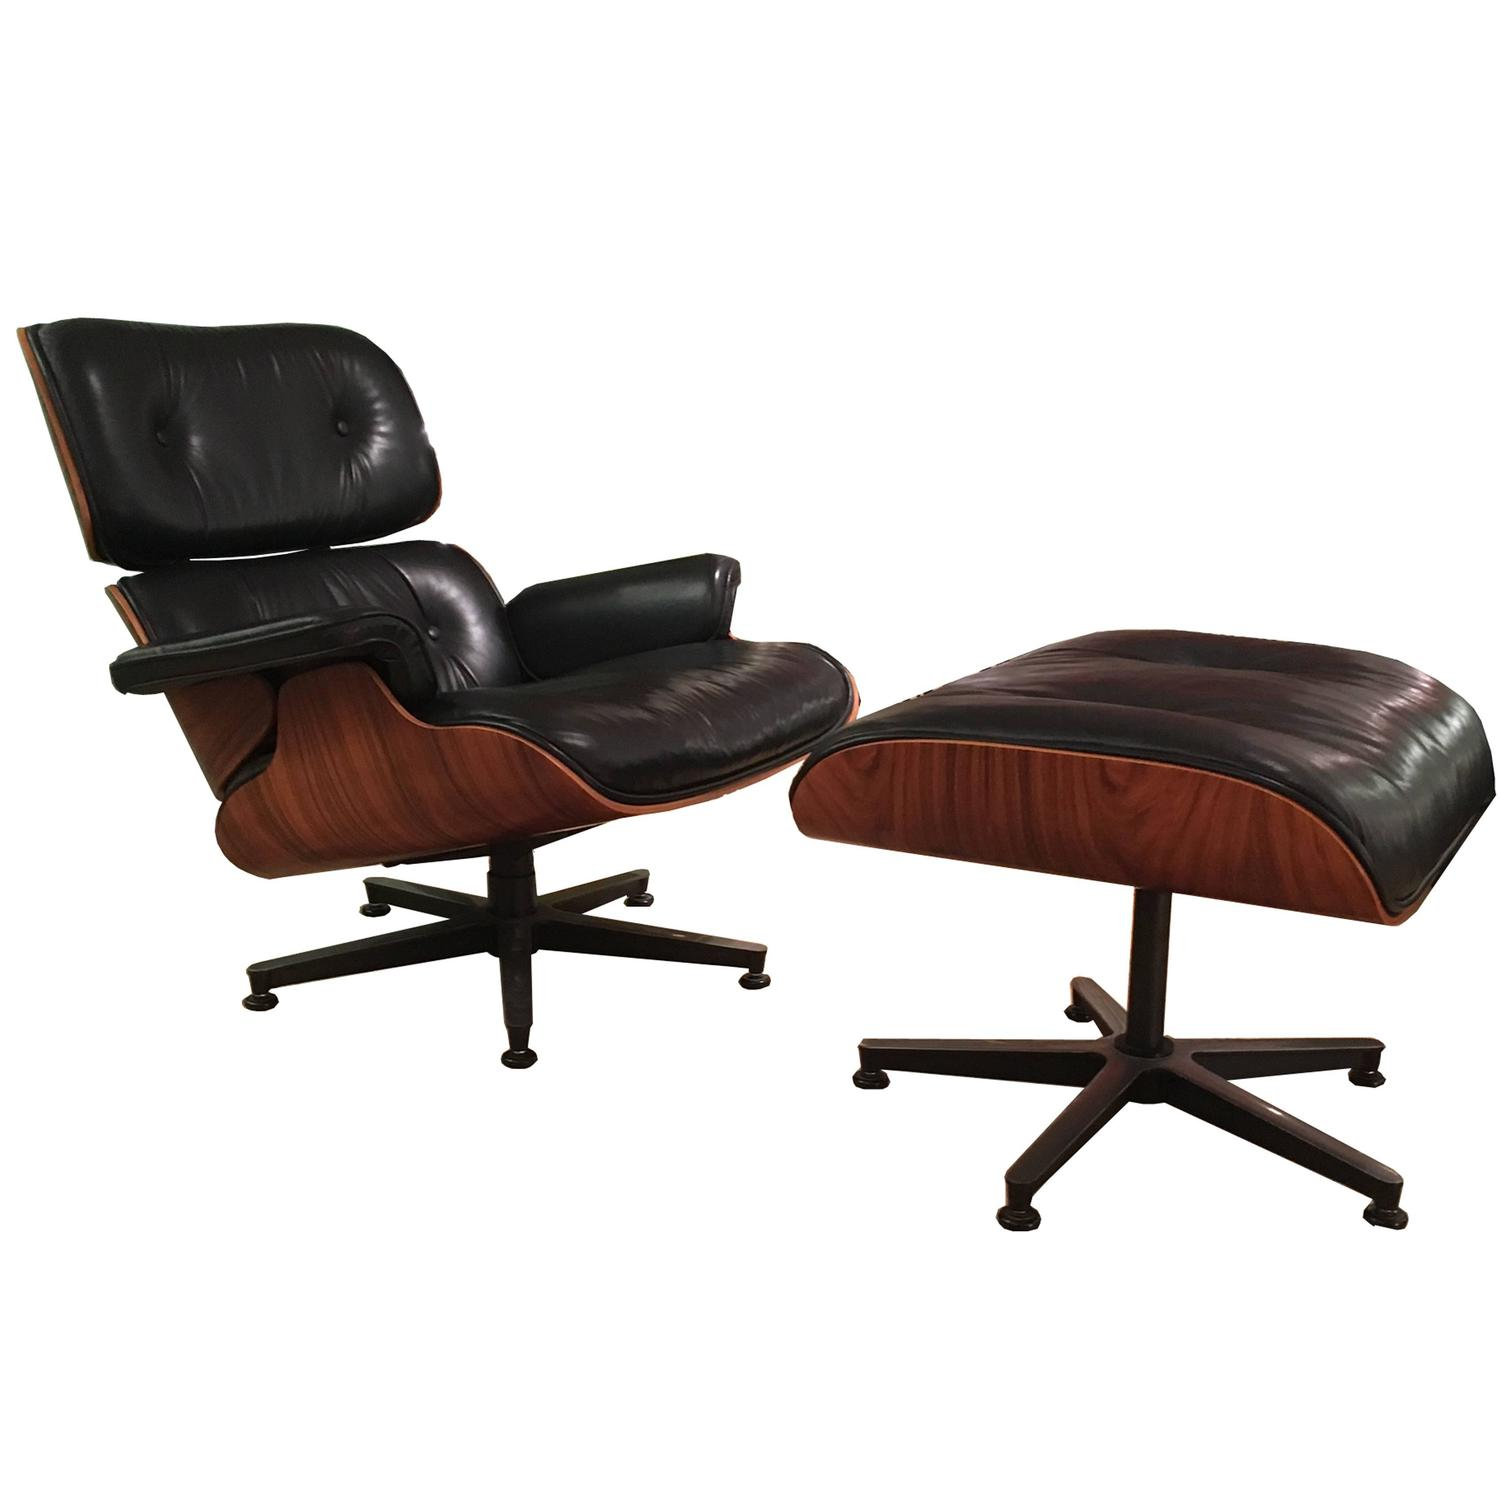 Lounge Chair and Ottoman by Charles Eames For Sale at 1stdibs